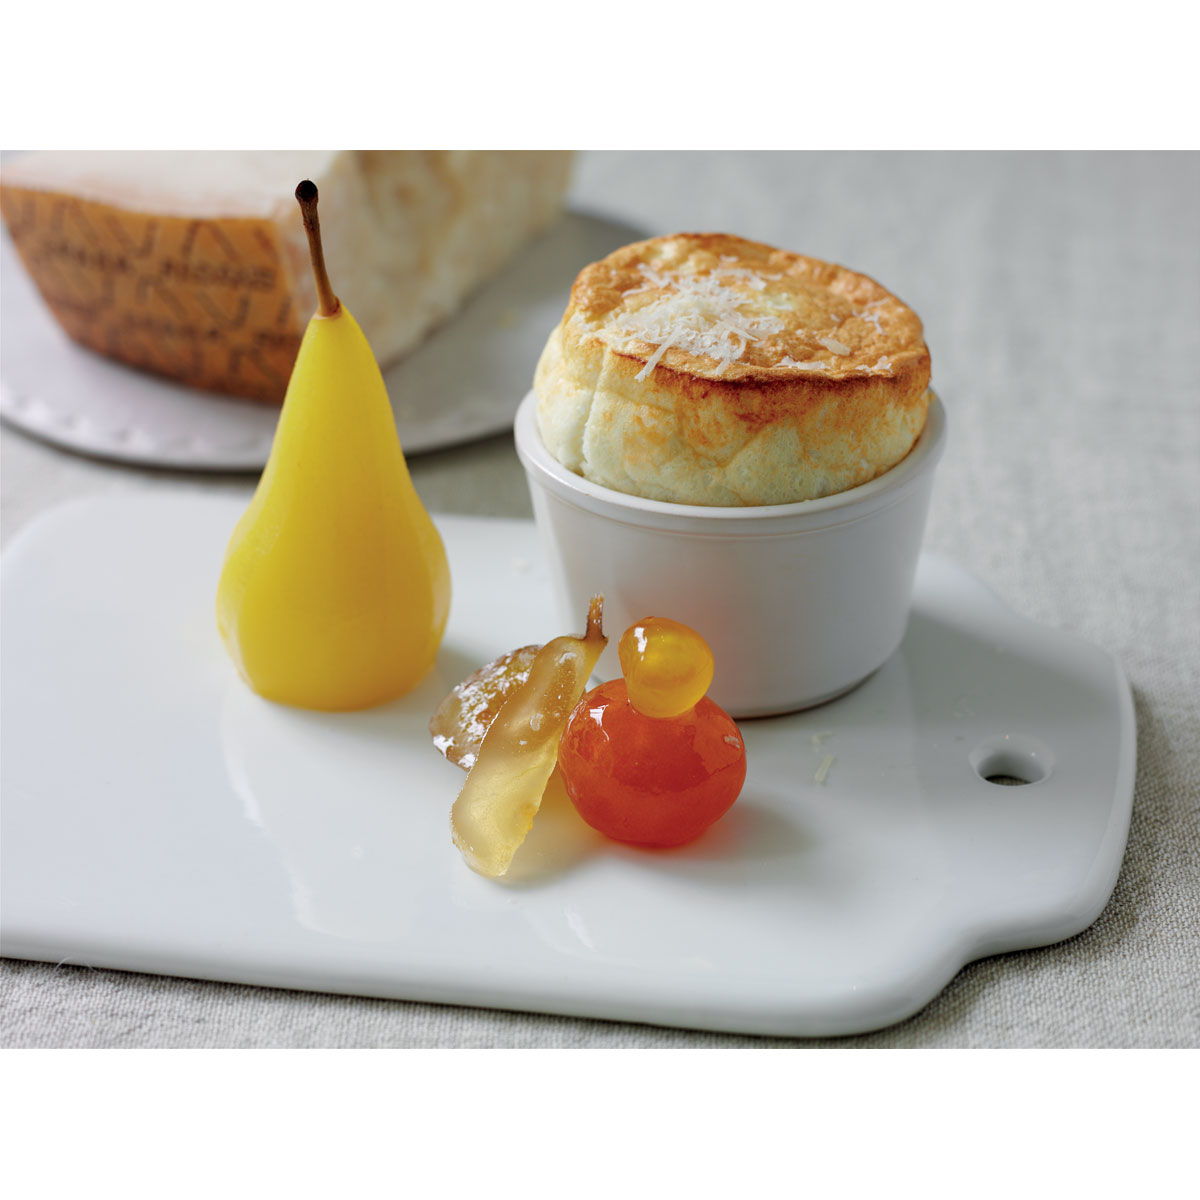 Grana Padano Riserva soufflé with fruit mustard & poached pears